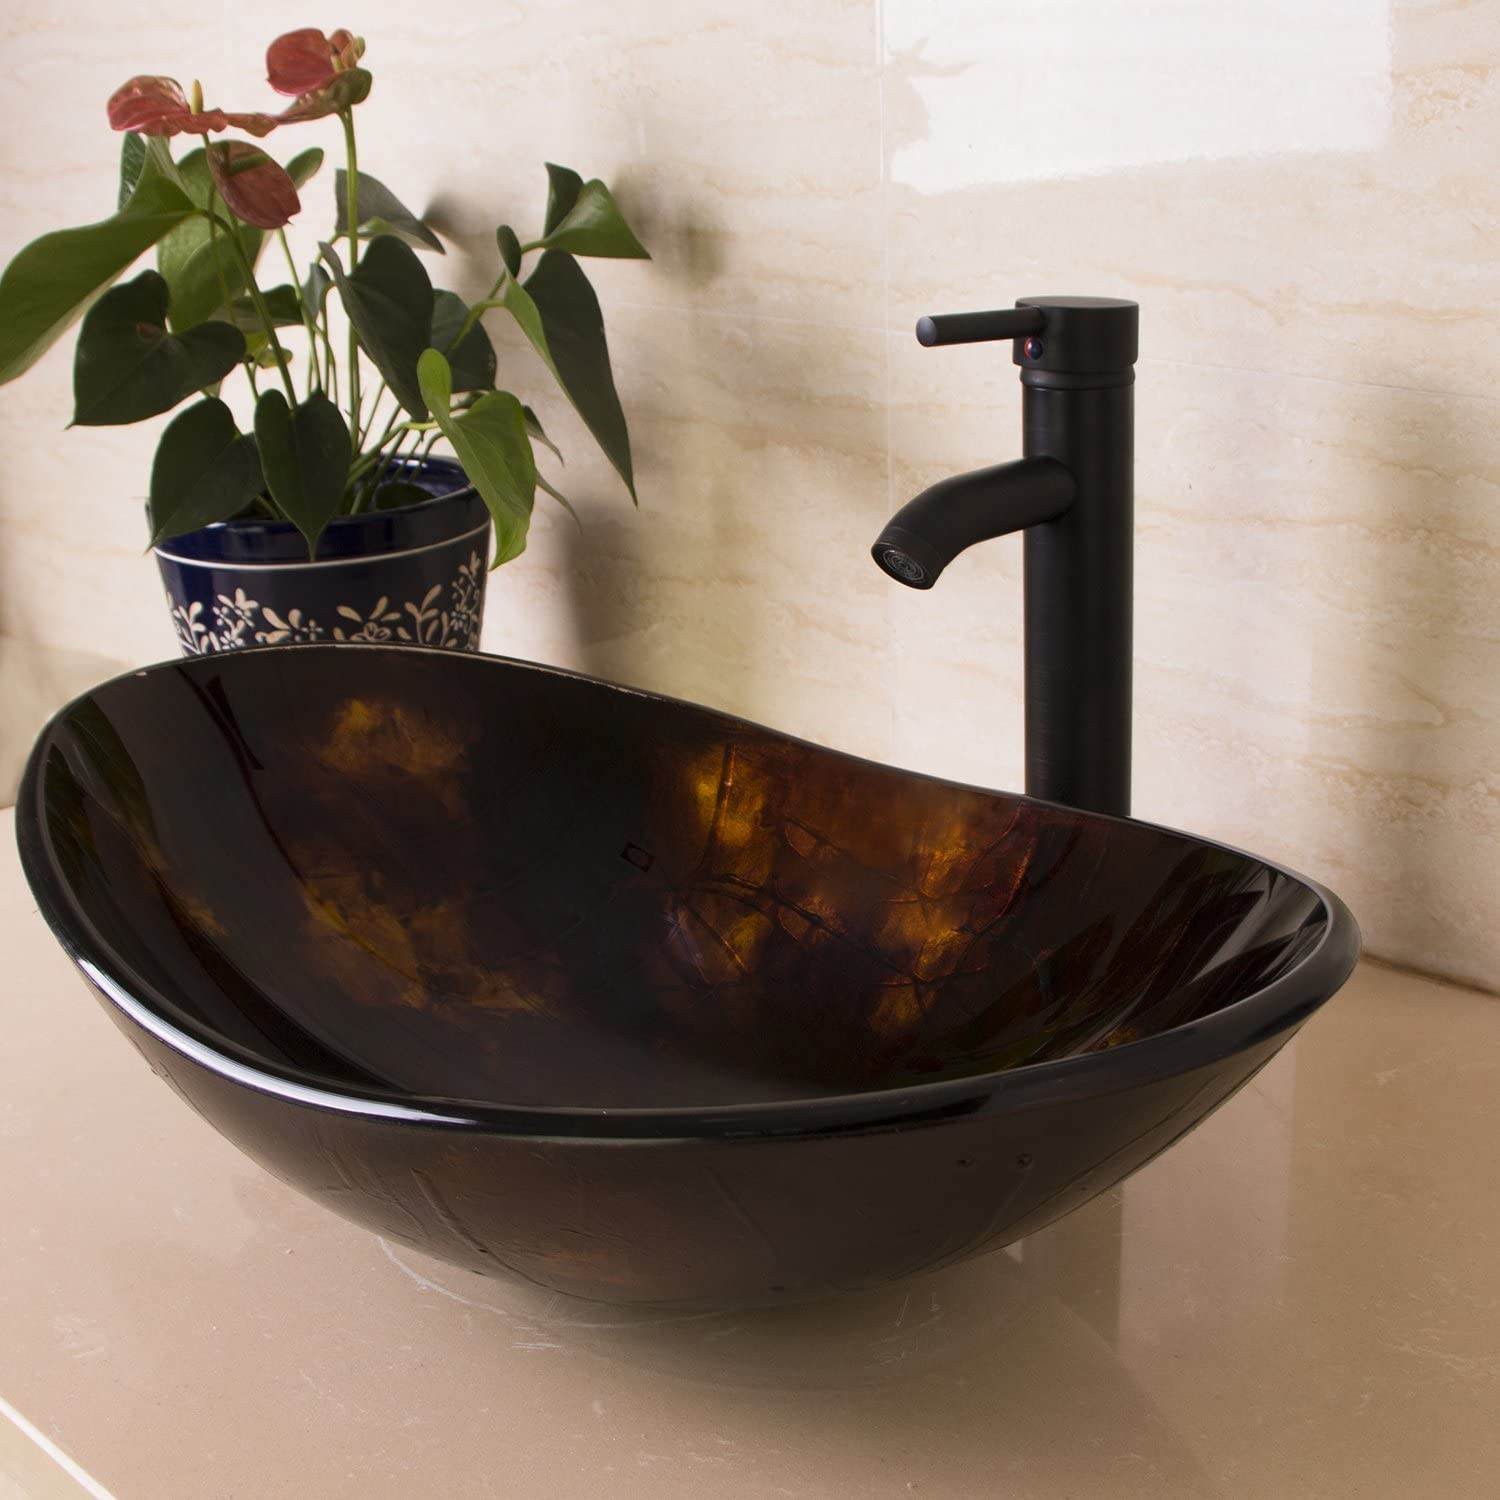 WALCUT USBR1038 Bathroom Modern Oval Artistic Glass Vessel Sink with Oil Rubbed Bronze Faucet And ORB Pop-Up Drain Combo, Black Golden Rose